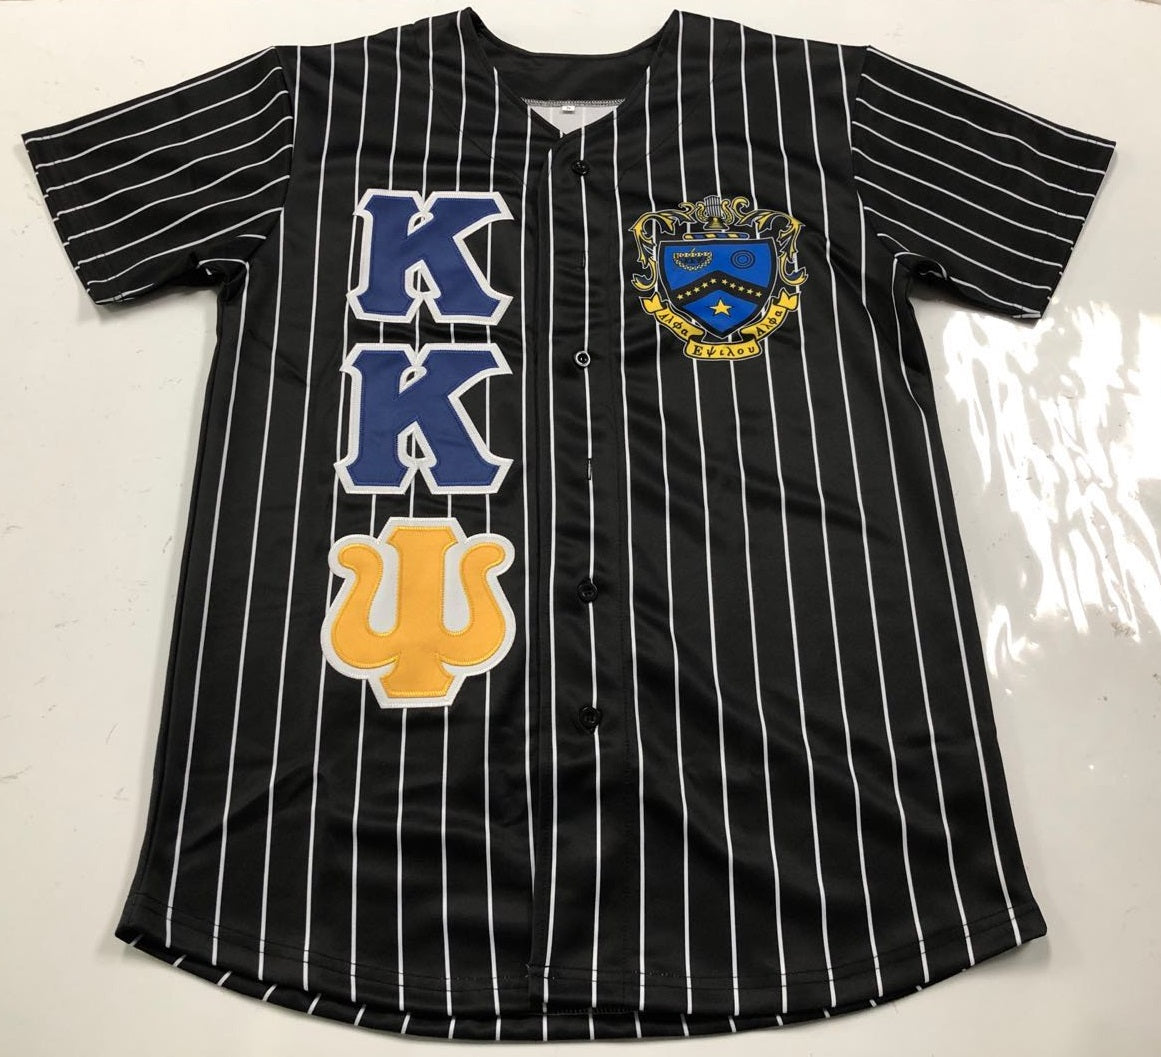 Kappa Kappa Psi - Black Baseball Jersey With Crest